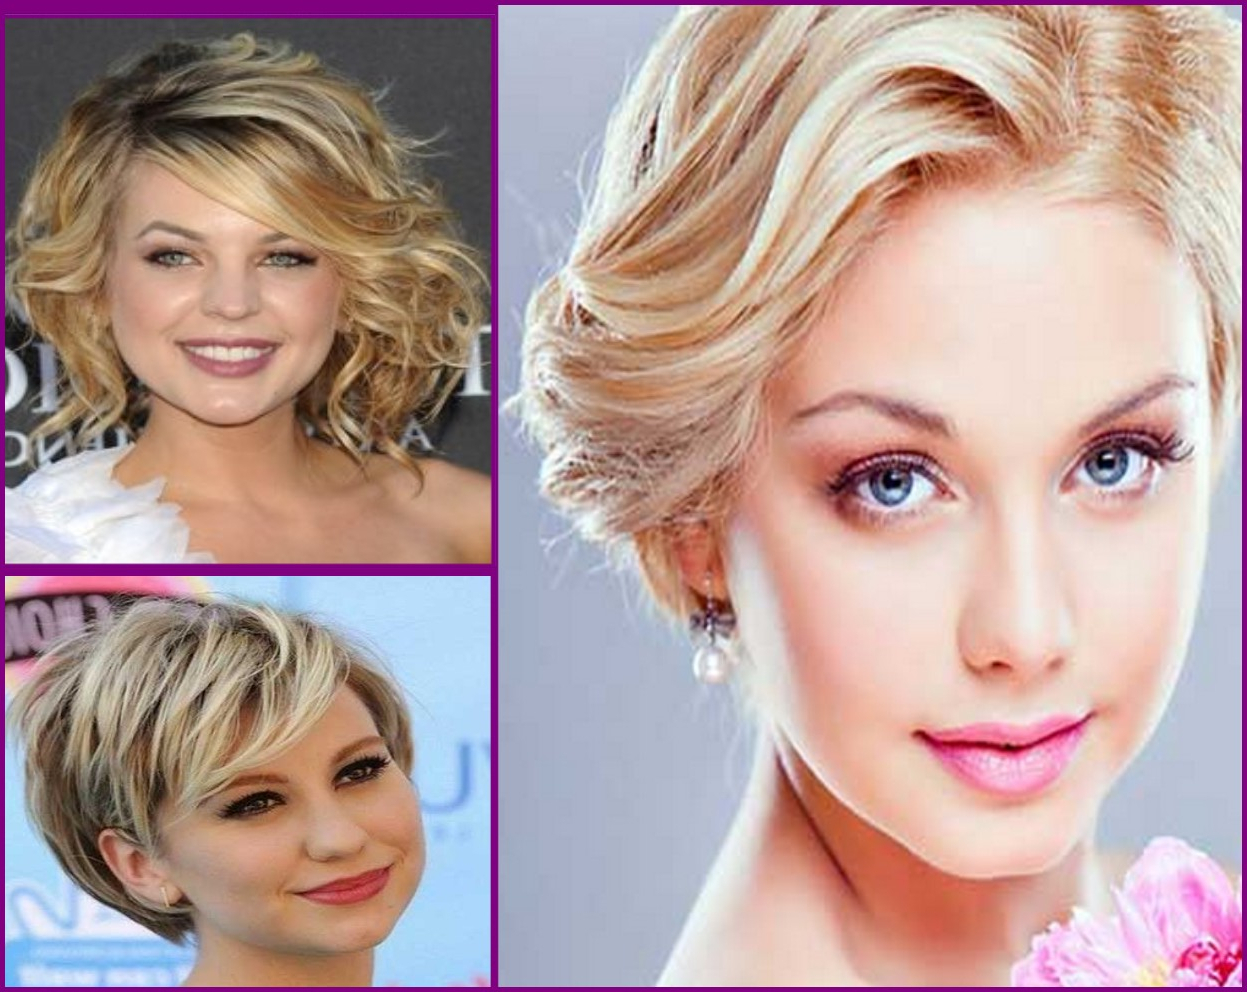 Side Swept Short Haircut For Wavy Hair Round Face – Hairstyles, Easy With Short Haircuts Curly Hair Round Face (View 23 of 25)